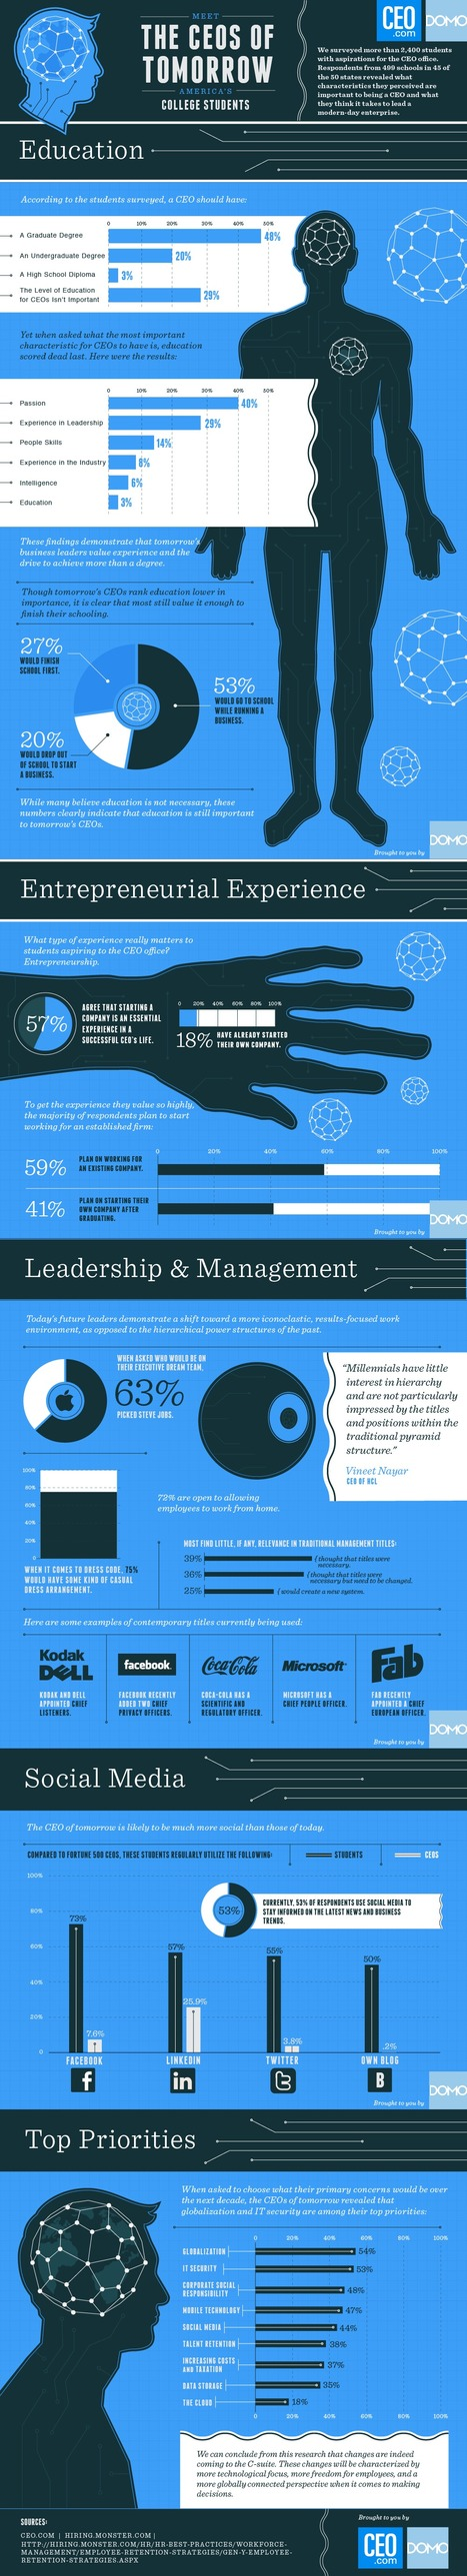 The CEOs Of Tomorrow | Visual.ly | Social Media and Web Infographics hh | Scoop.it